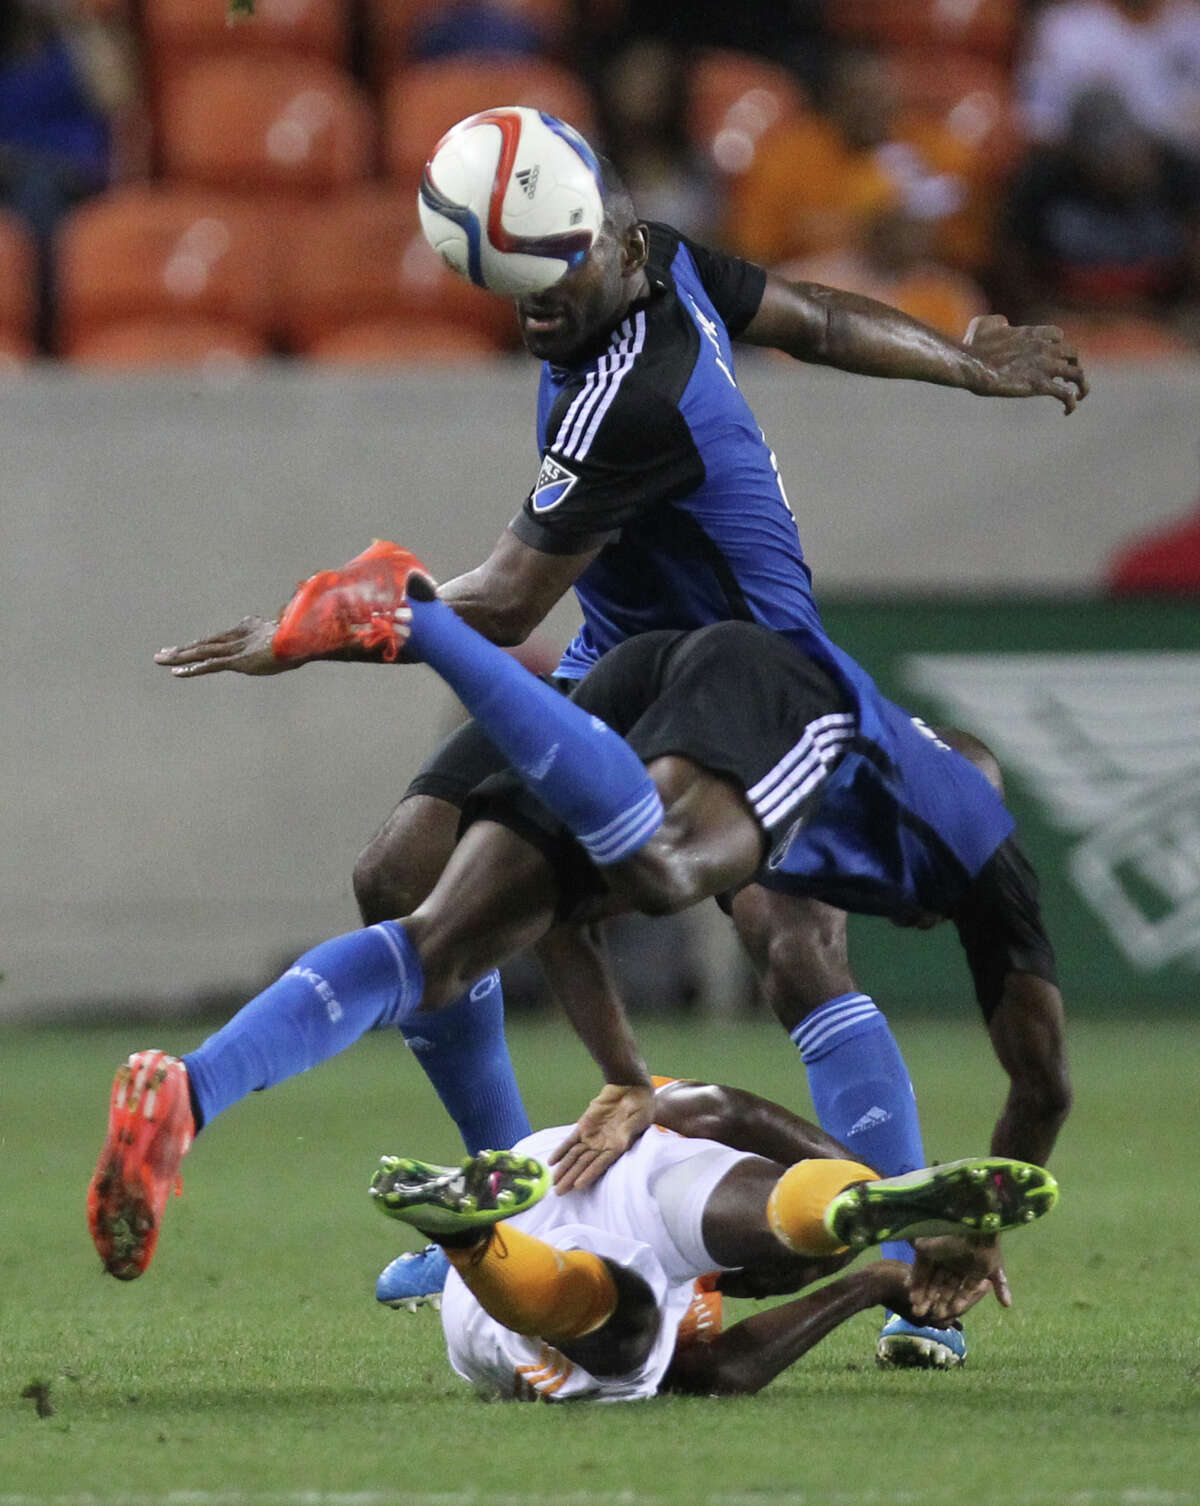 Houston Dynamo defender/midfielder DaMarcus Beasley (7) and San Jose Earthquakes midfielder Sanna Nyassi (17) collapse at the feet of San Jose Earthquakes defender Marvell Wynne (4), Tuesday, May 5, 2015, near the end of the first half, in Houston.